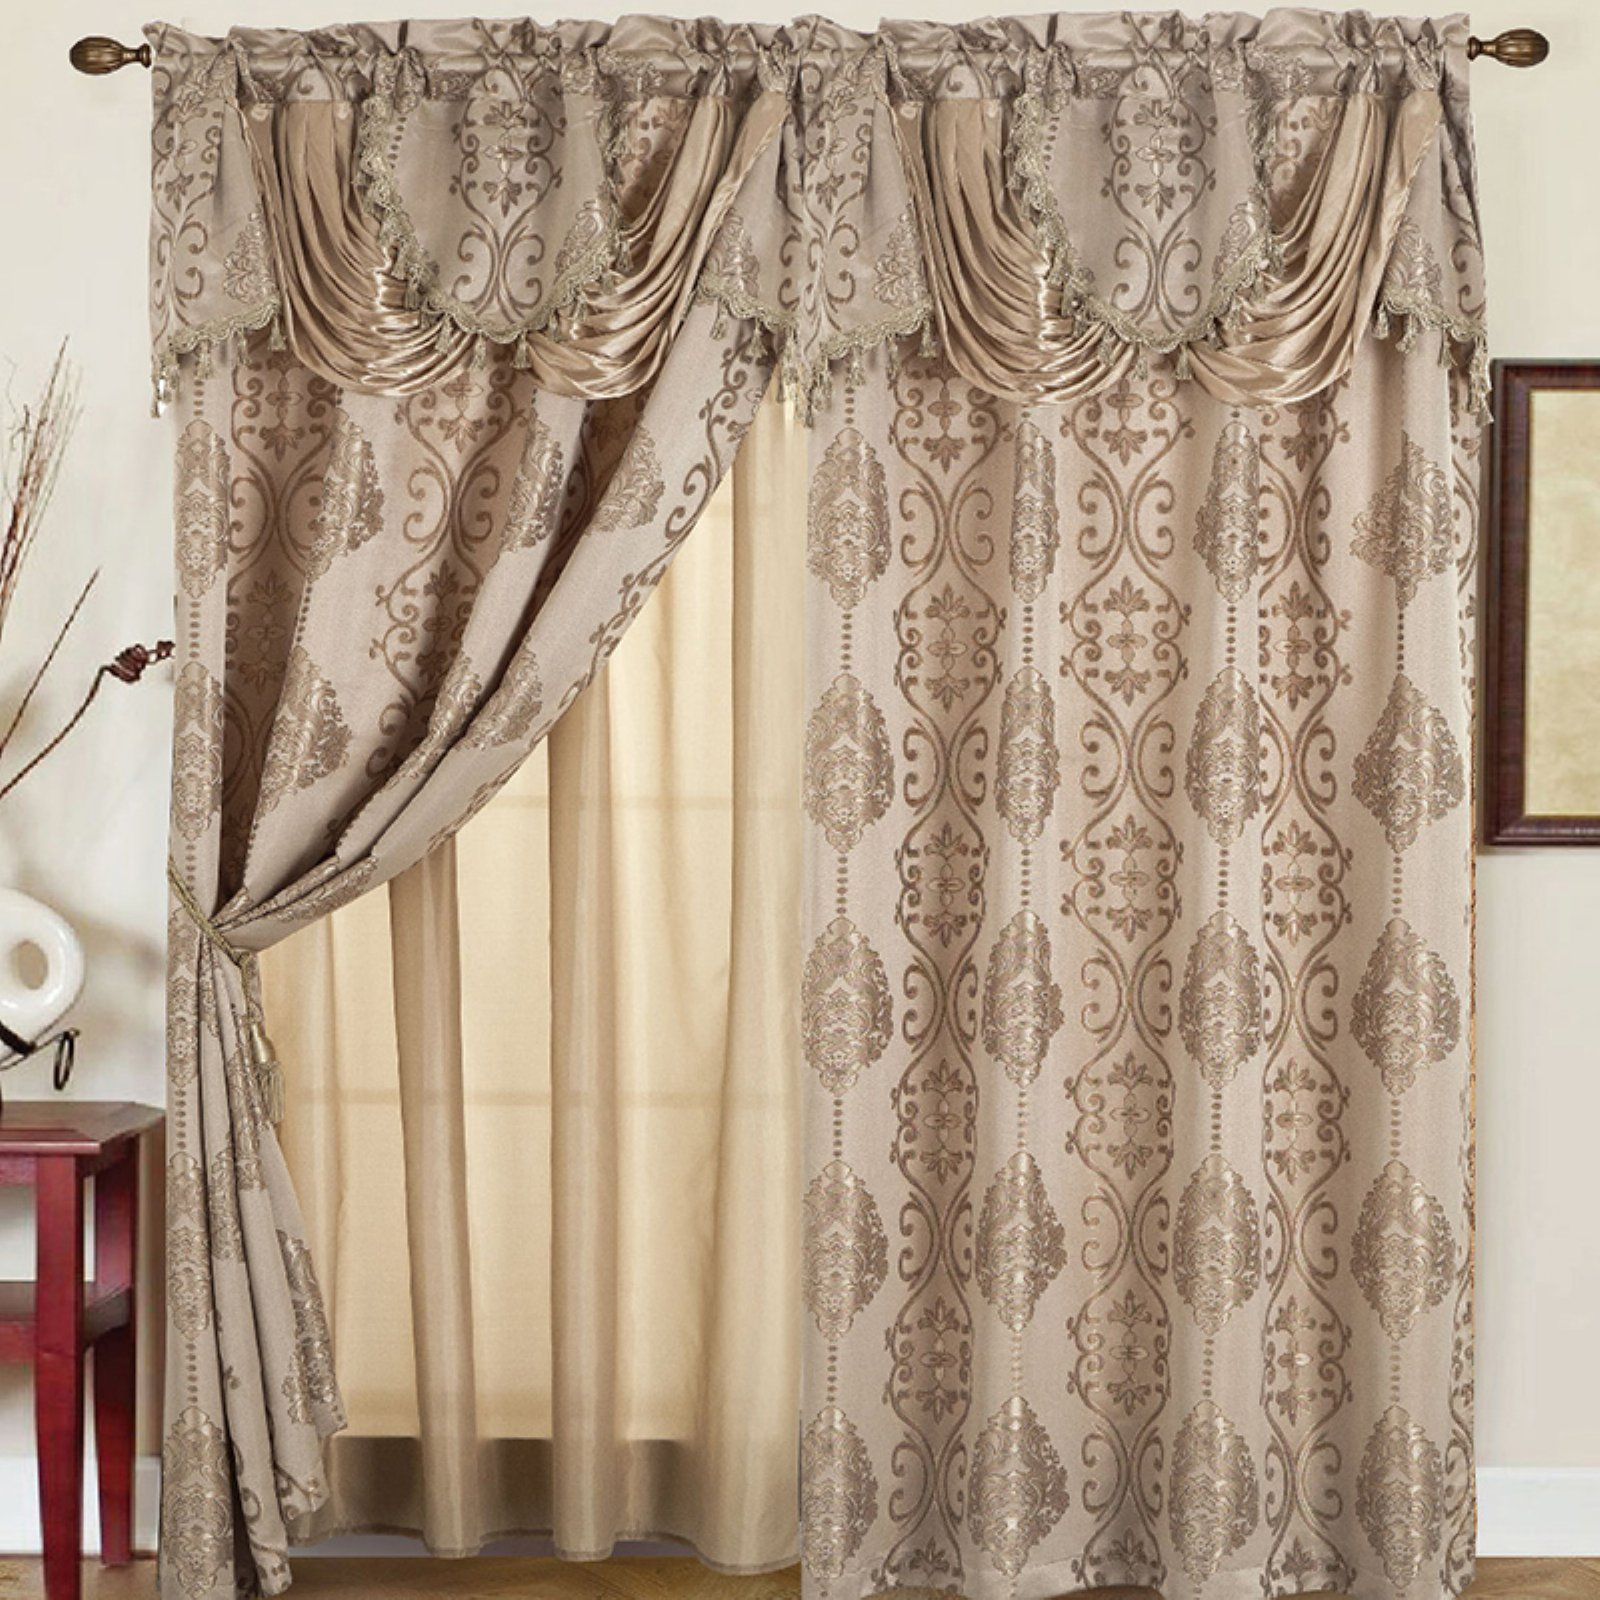 Rt Designers Collection Rosetta Jacquard Double Curtain Panel With Valance Taupe In 2020 Panel Curtains Curtains Insulated Curtains